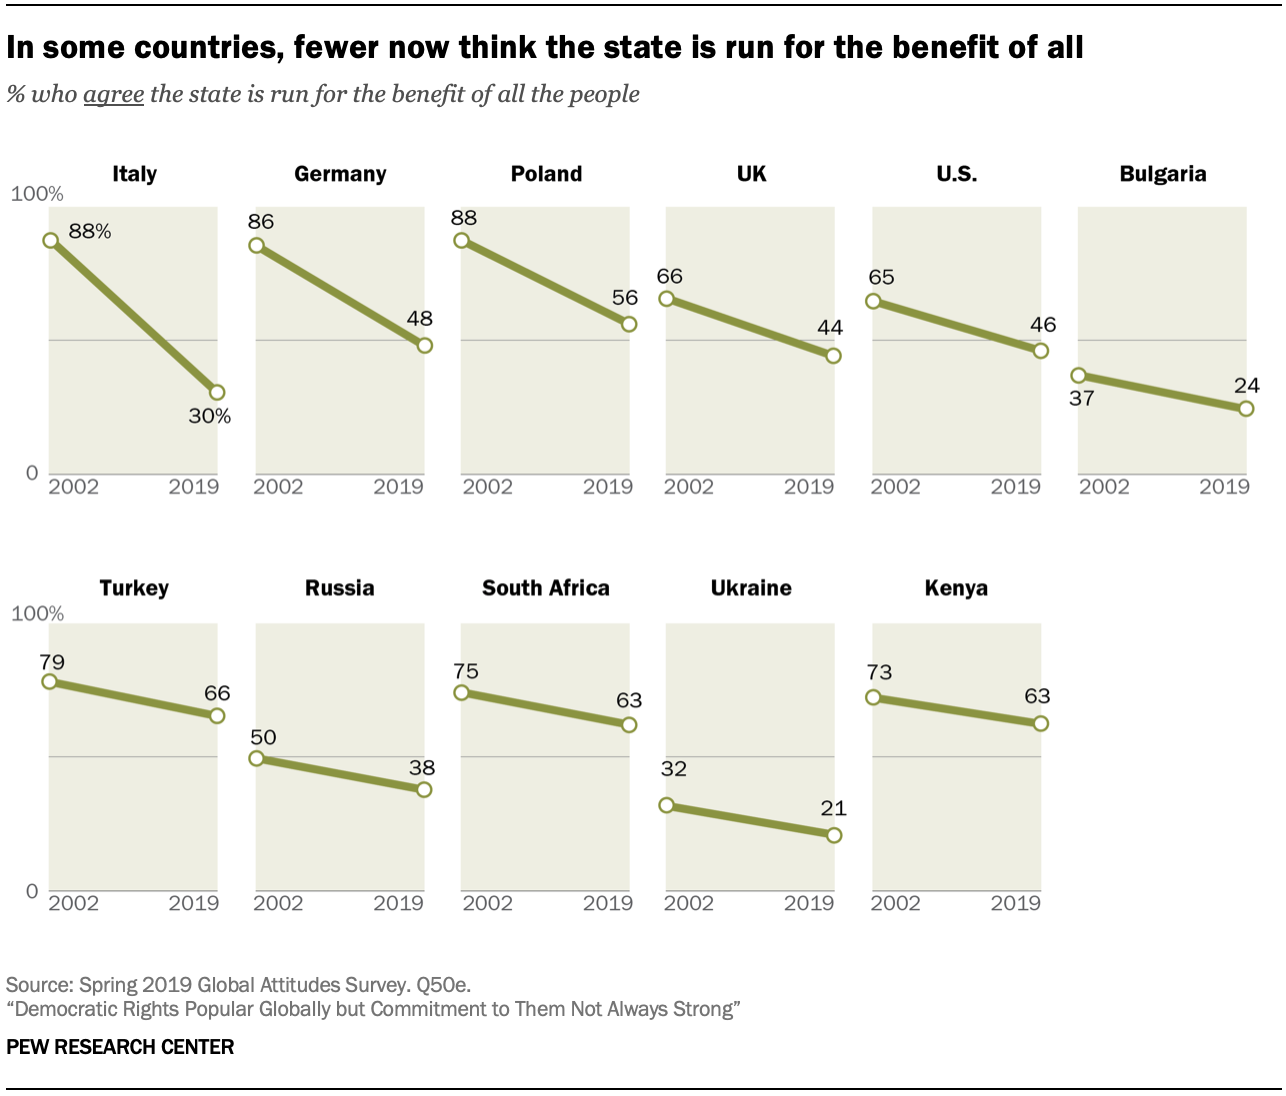 Chart shows in some countries, fewer now think the state is run for the benefit of all